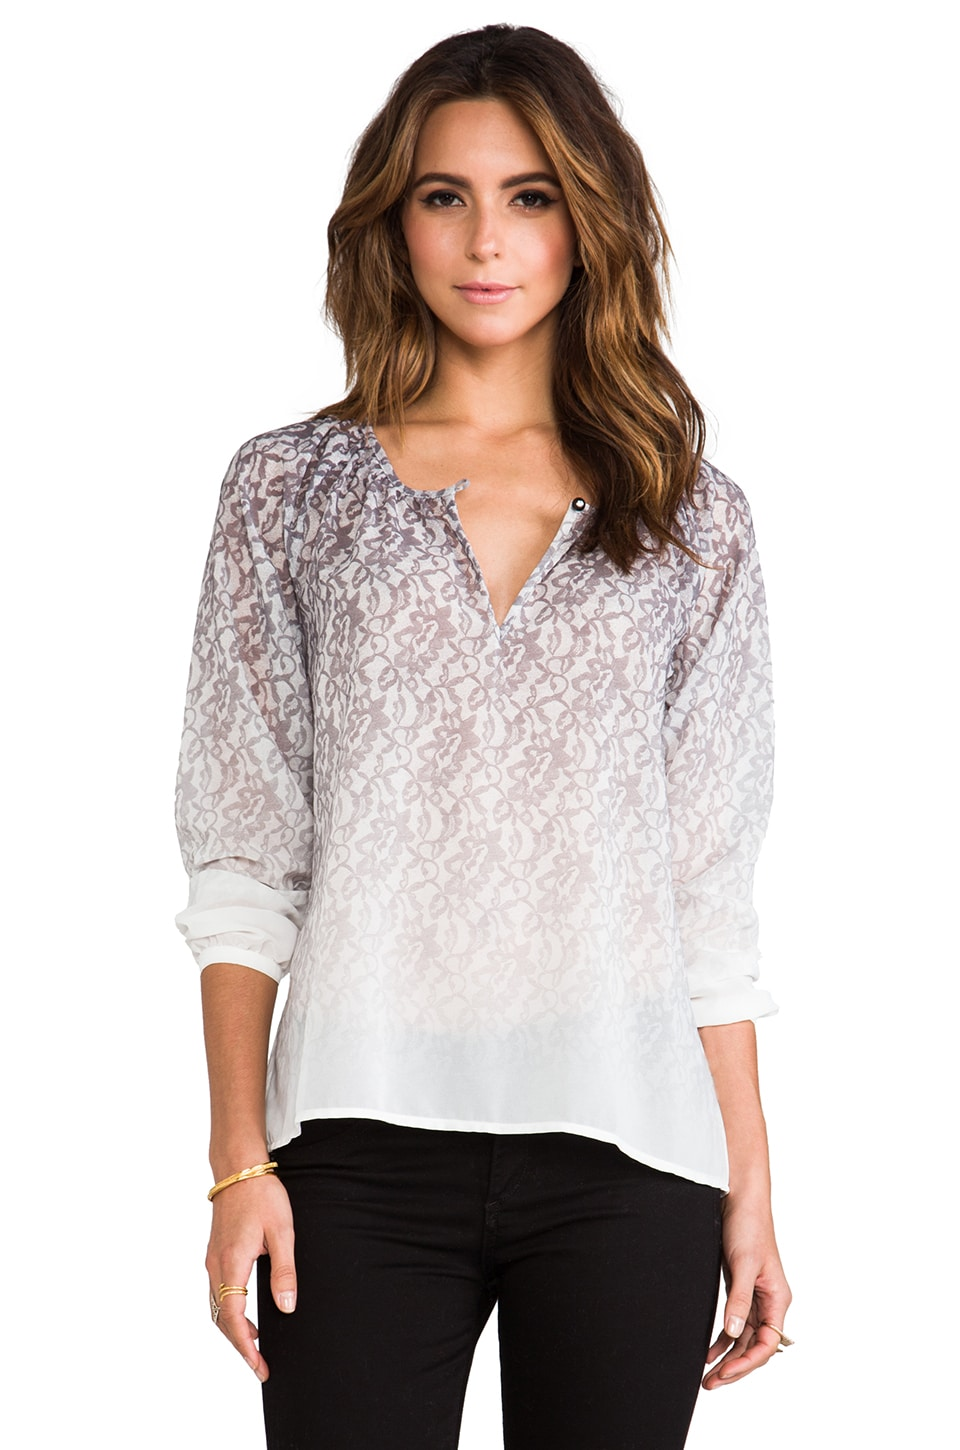 Sanctuary Gypsy Ombre Top in Lace